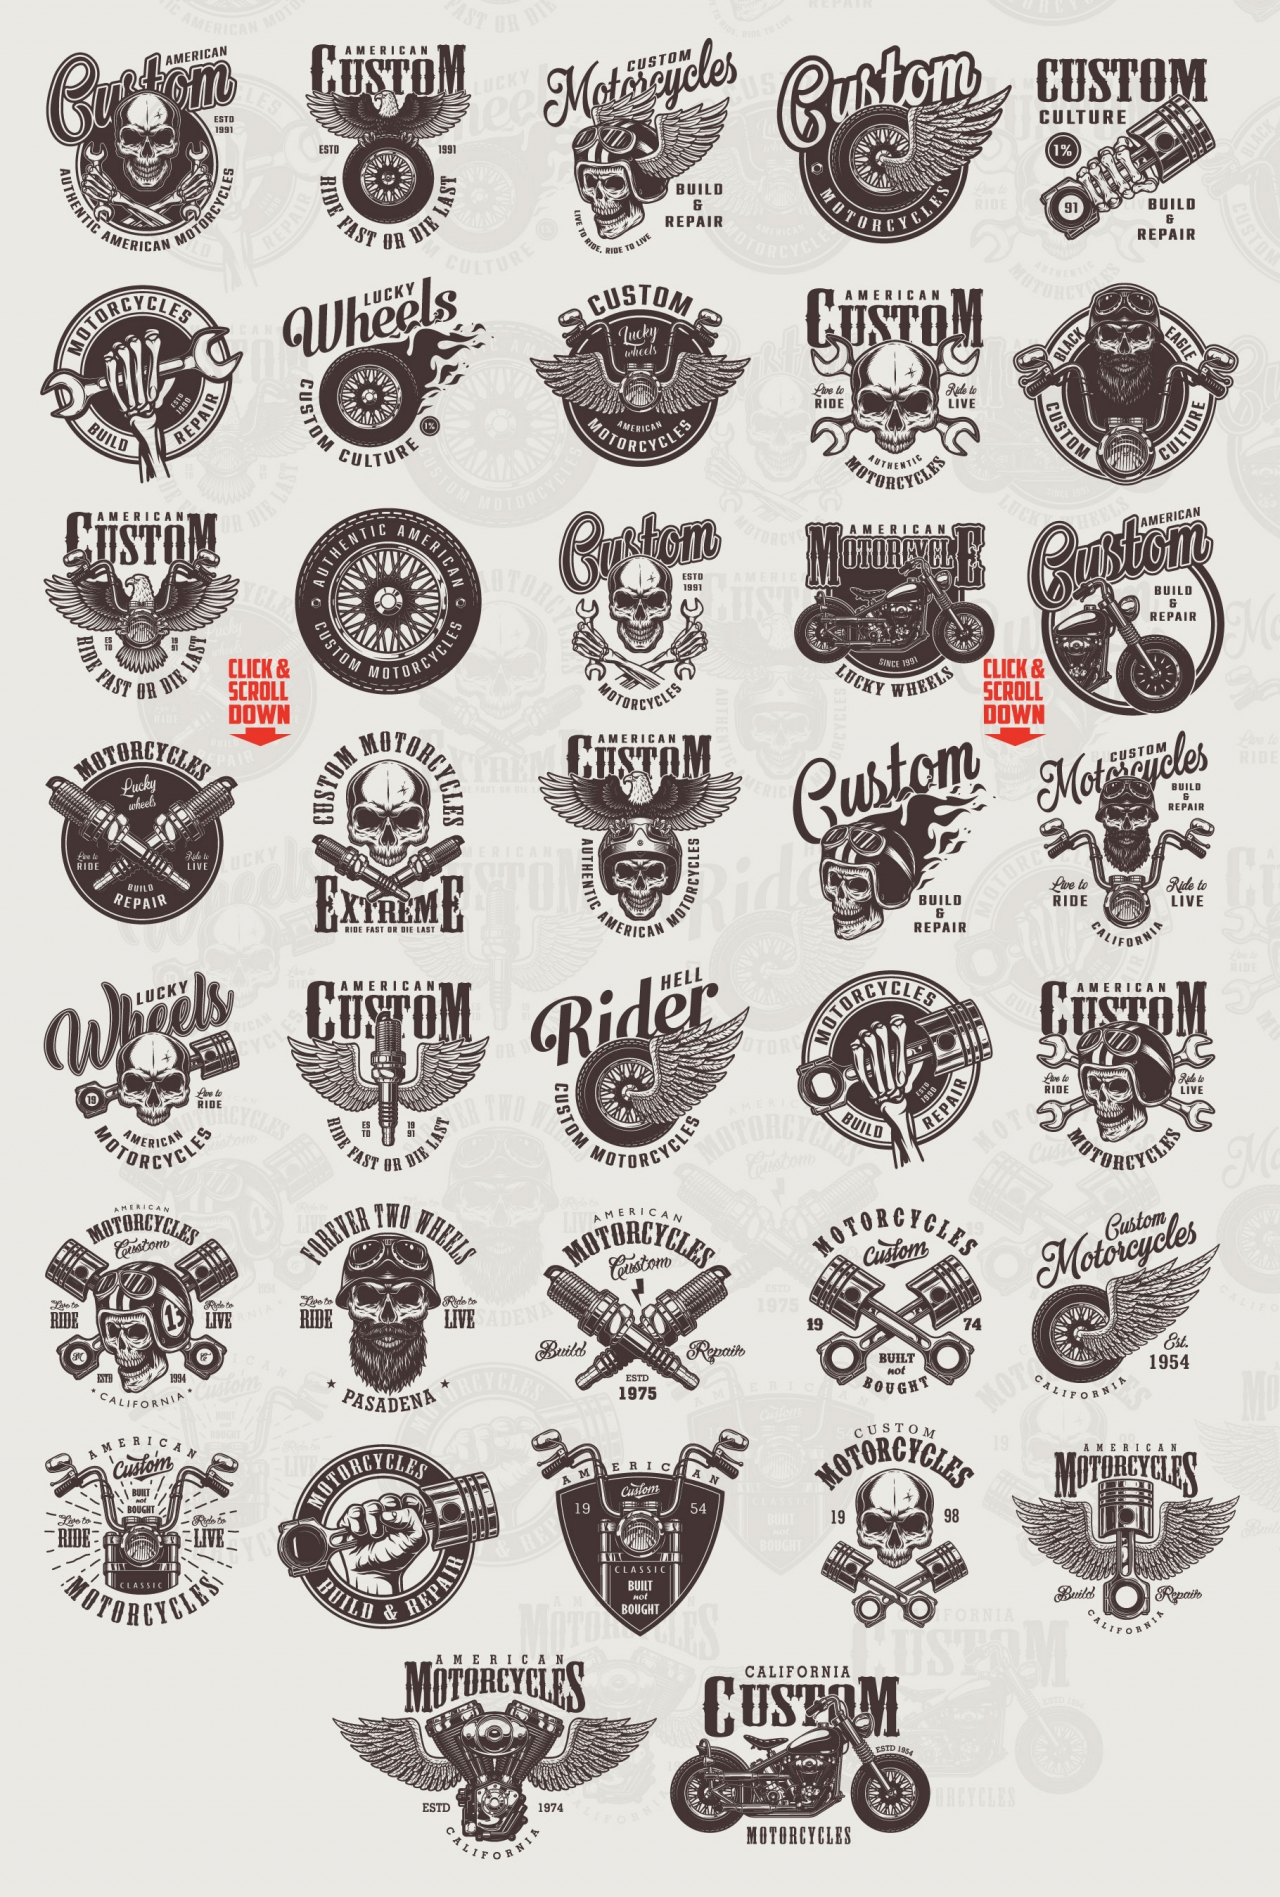 Vintage custom motorcycle designs collection with moto labels, emblems, badges, prints in monochrome style on light background